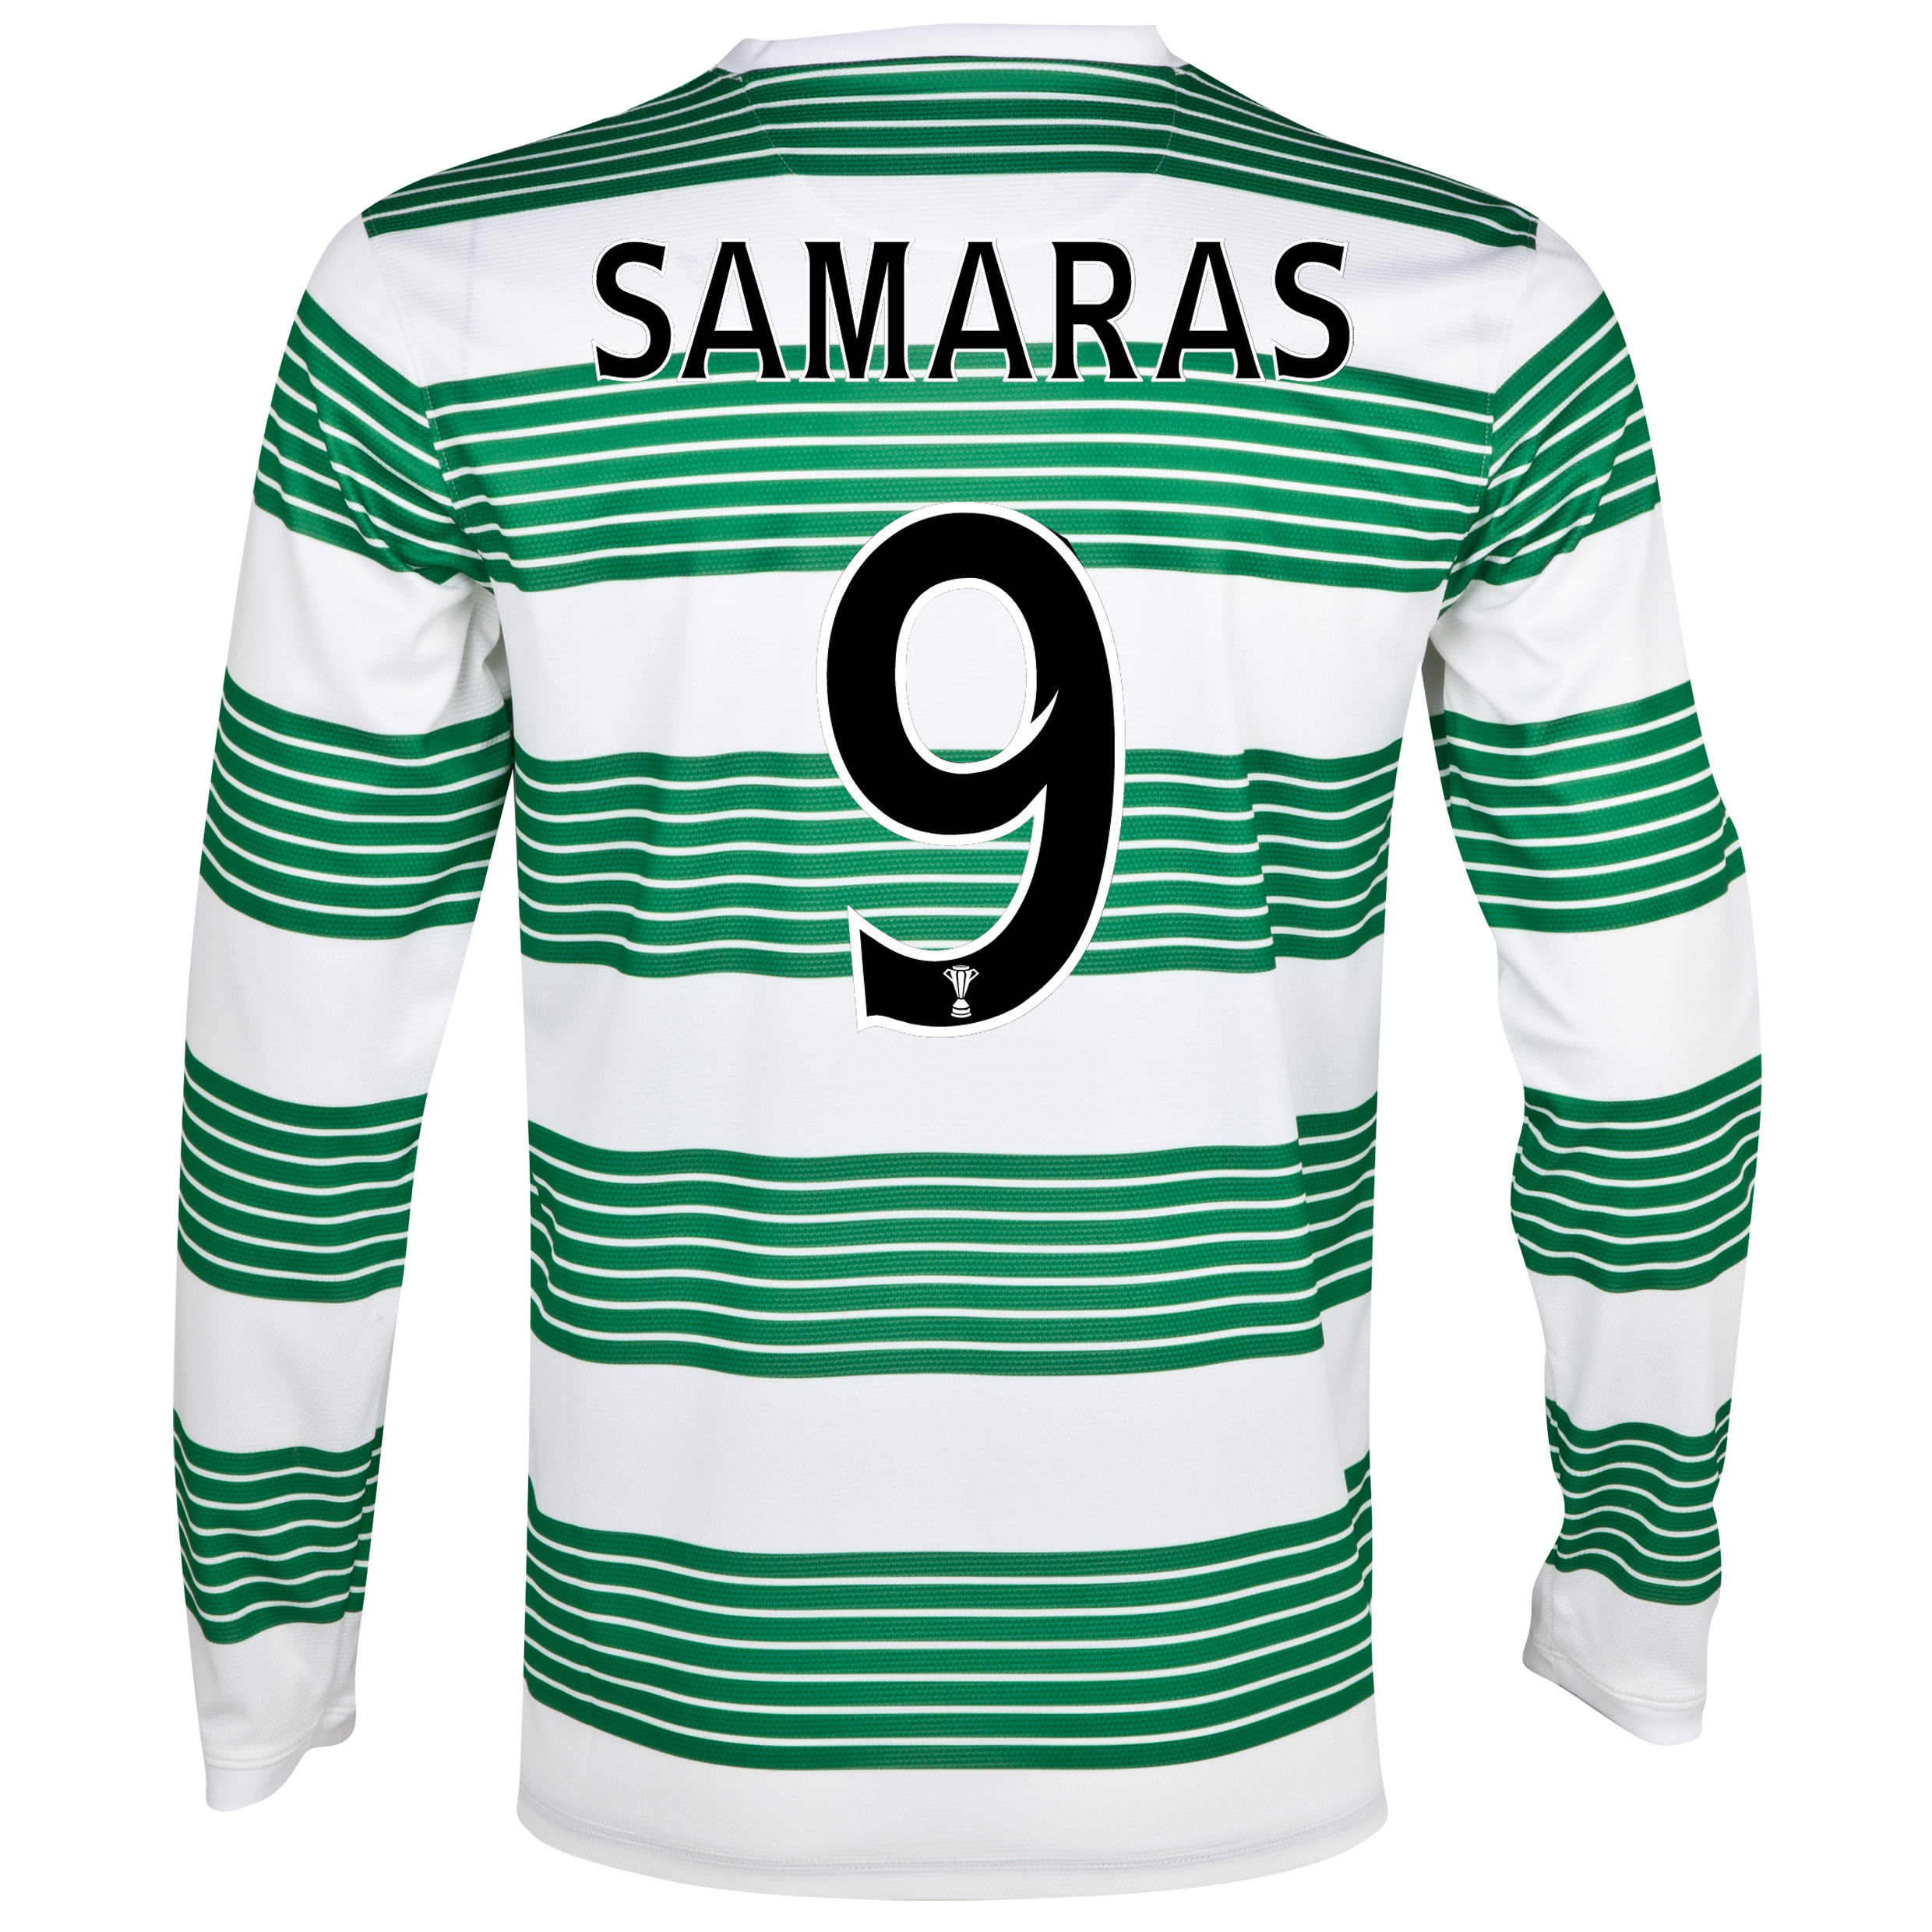 Celtic Home Shirt 2013/14 - L/S- Unsponsored with Samaras 9 printing